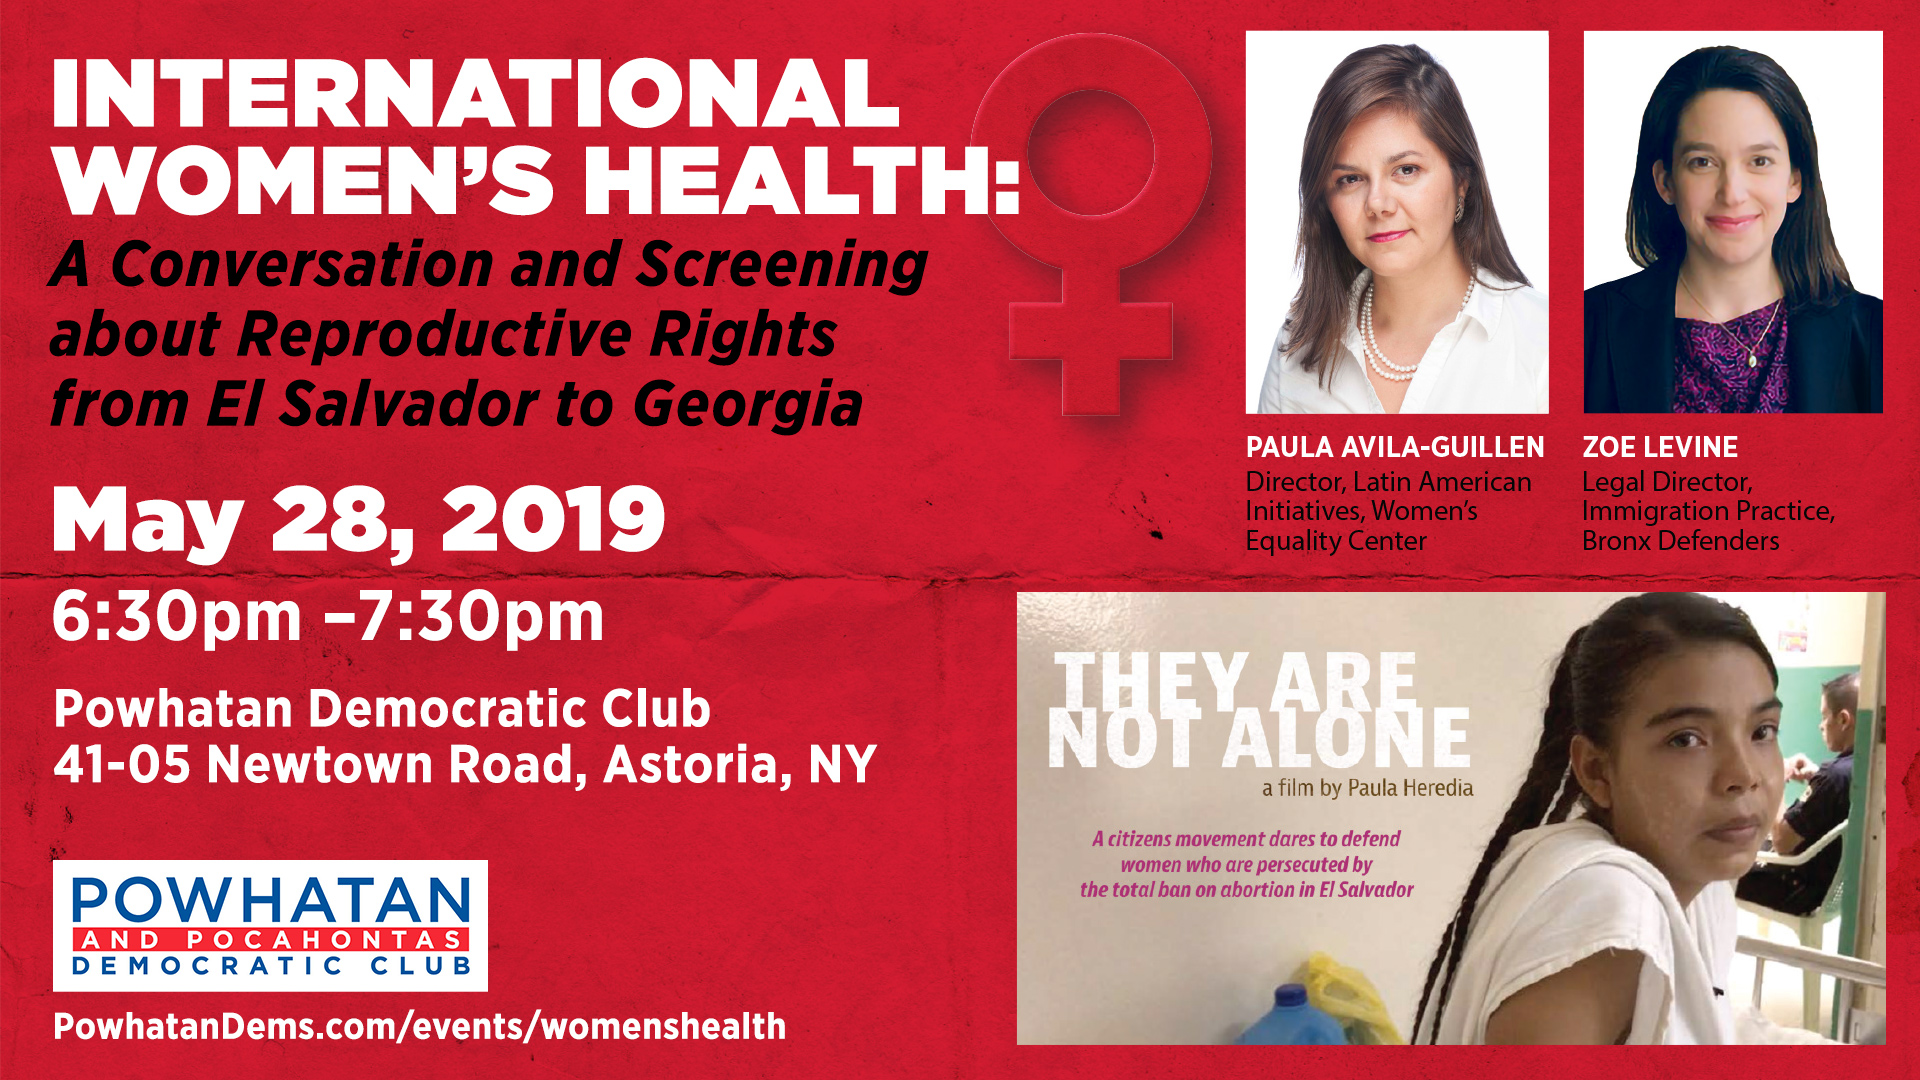 Women's reproductive rights are under attack around the world.  Join speakers Paula Avila-Guillen and Zoe Levine, who will discuss recent bills that seek to ban abortions in the U.S., and their similarities with existing abortion restrictions and outright bans in Latin American countries.  The presentation includes a screening of 15 minutes from the documentary  They Are Not Alone , which takes an unflinching look at El Salvador's total abortion ban through the lives and trials of four women whose pregnancies took them from hospital beds to prison cells.